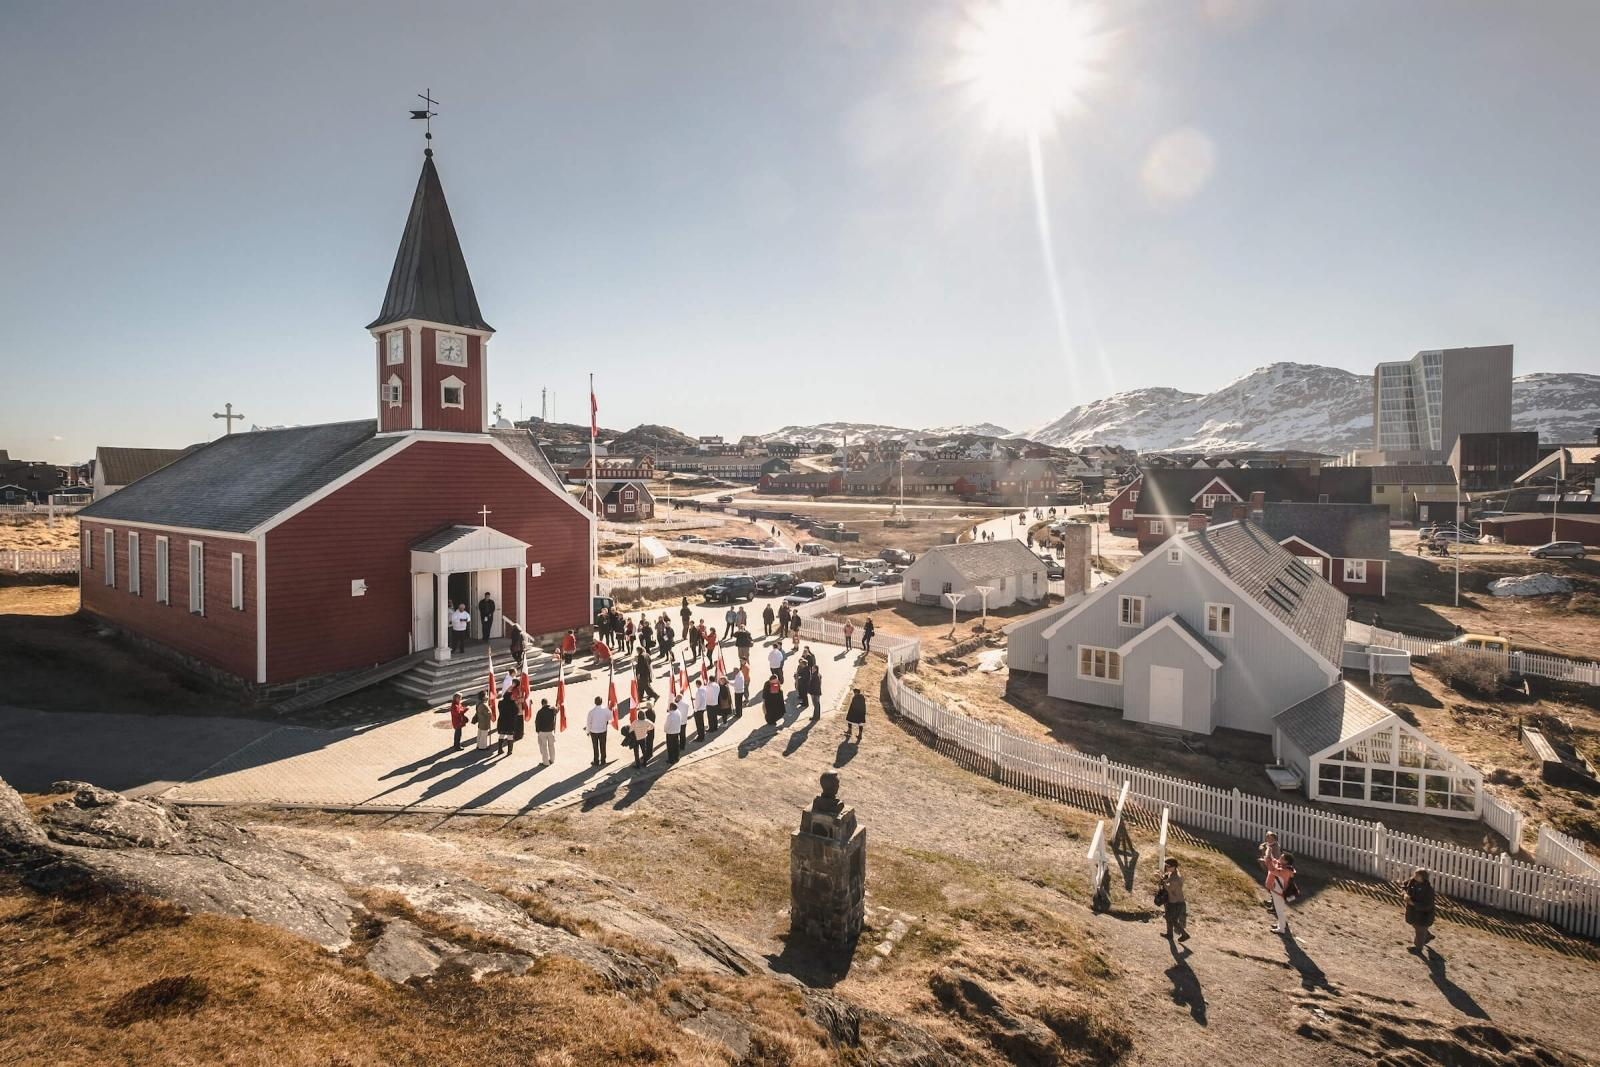 The old church in Nuuk on a sunny National day in Greenland June 21 2015